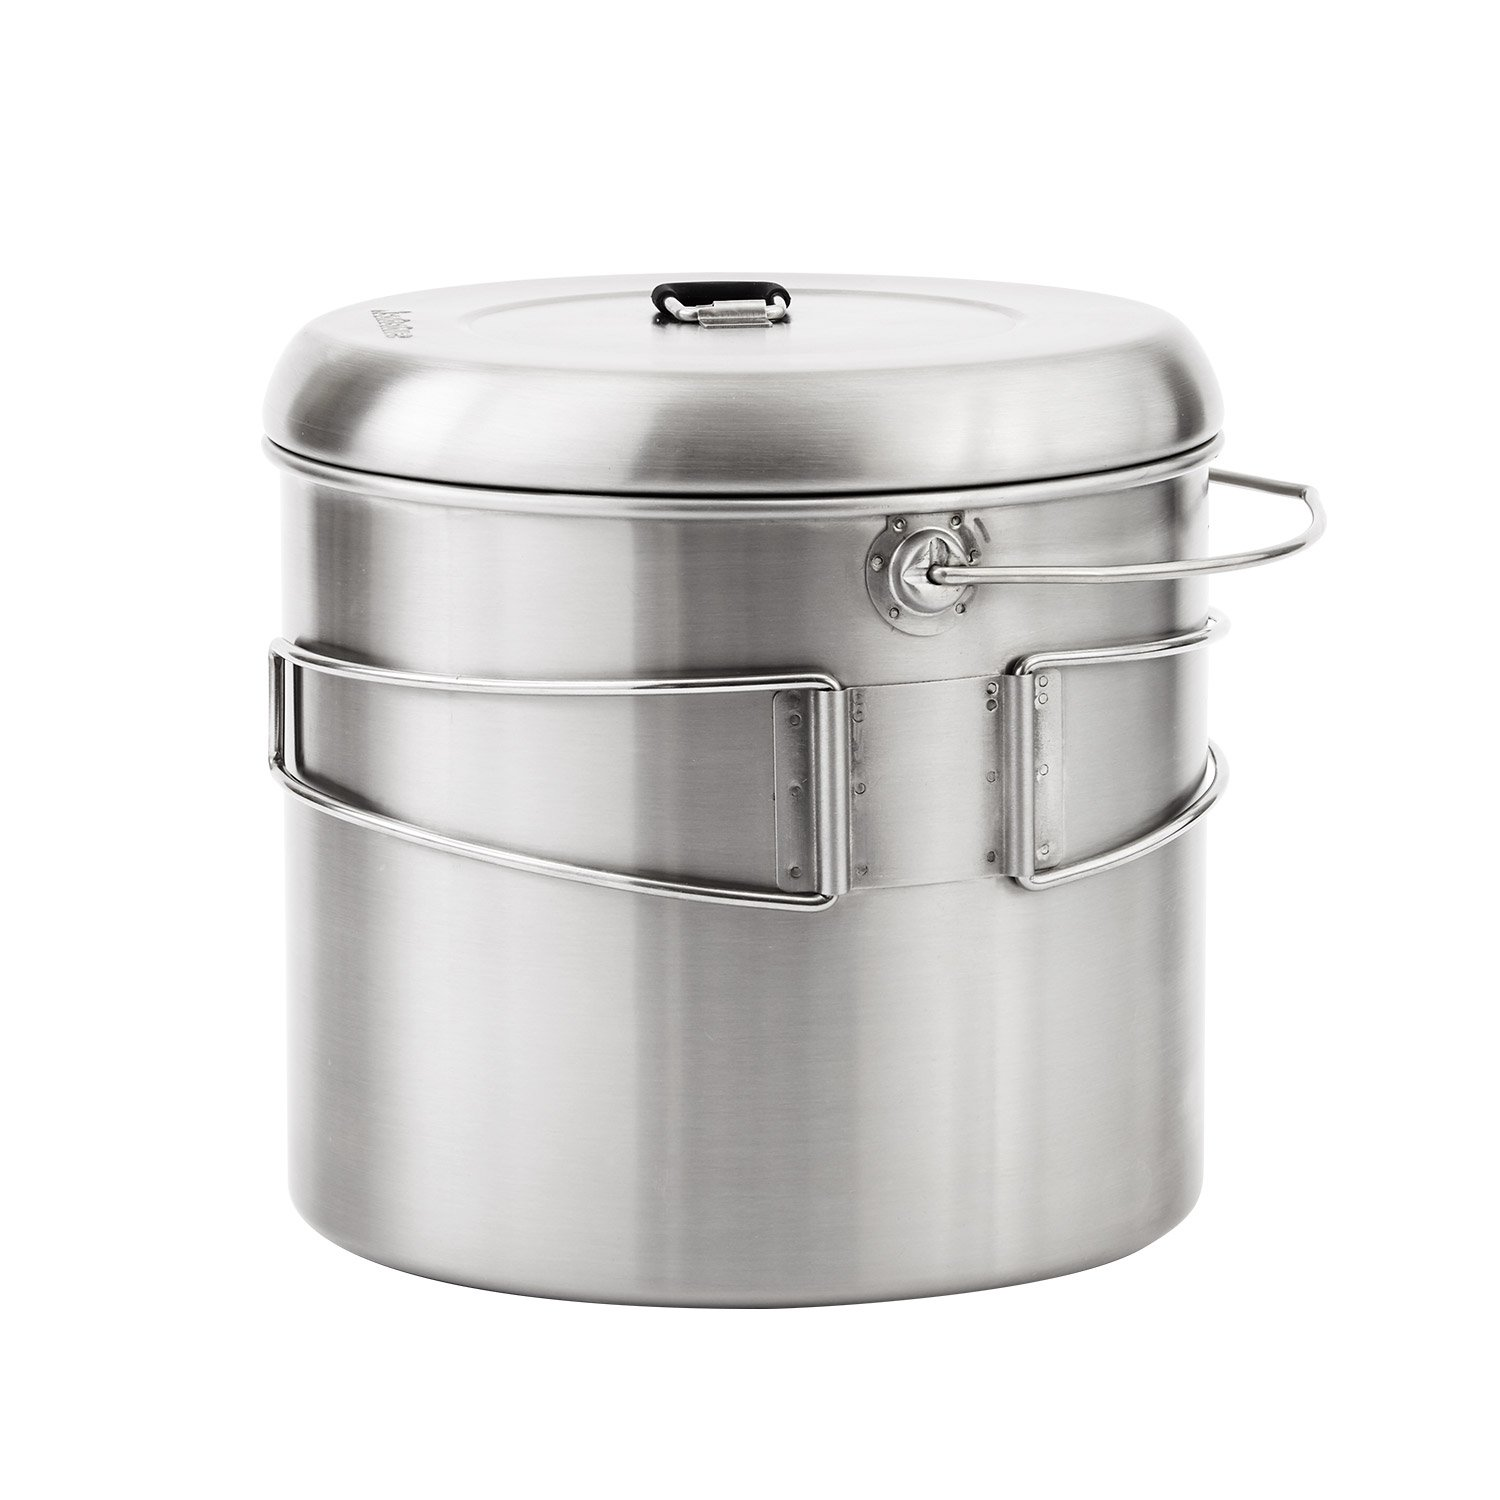 Solo Stove Pot 4000: Stainless Steel Companion Pot for Campfire. Great for Backpacking, Camping, Bushcraft, Survival